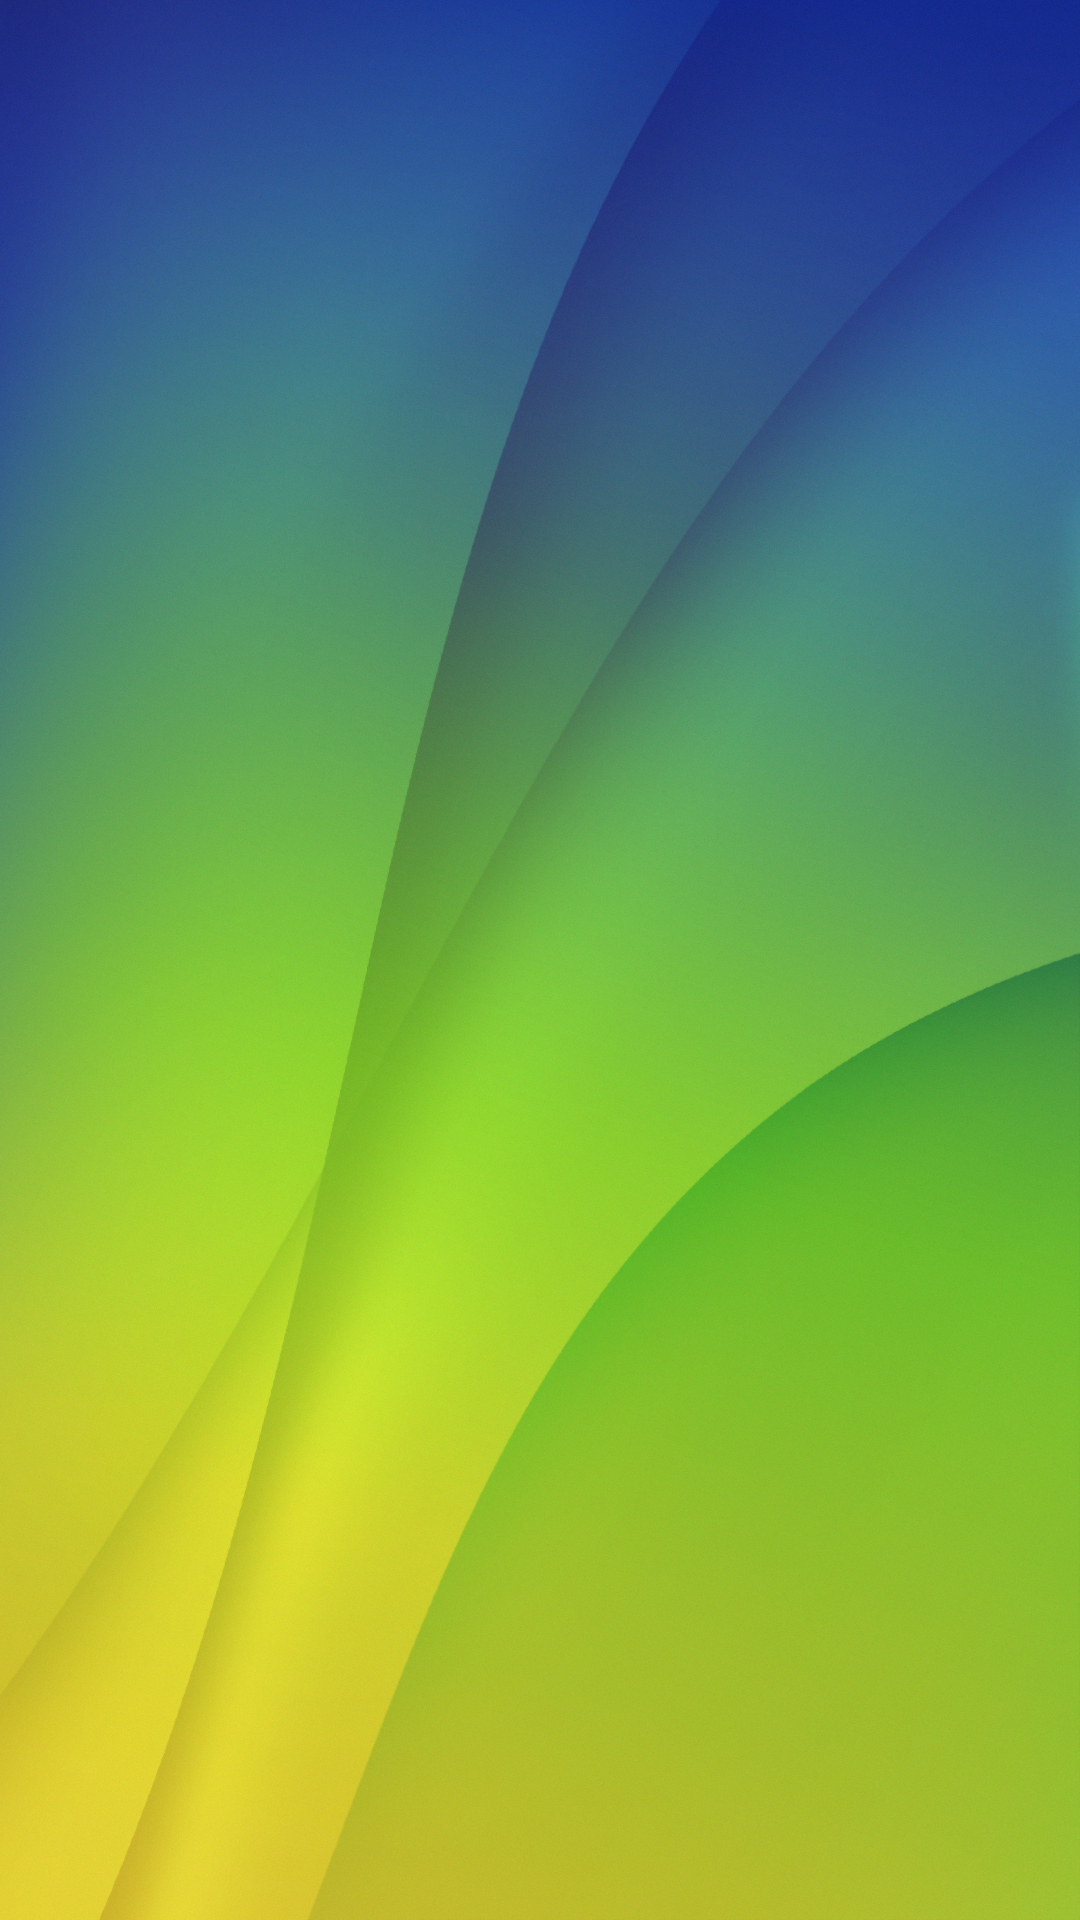 Hd wallpaper oppo - Available Downloads